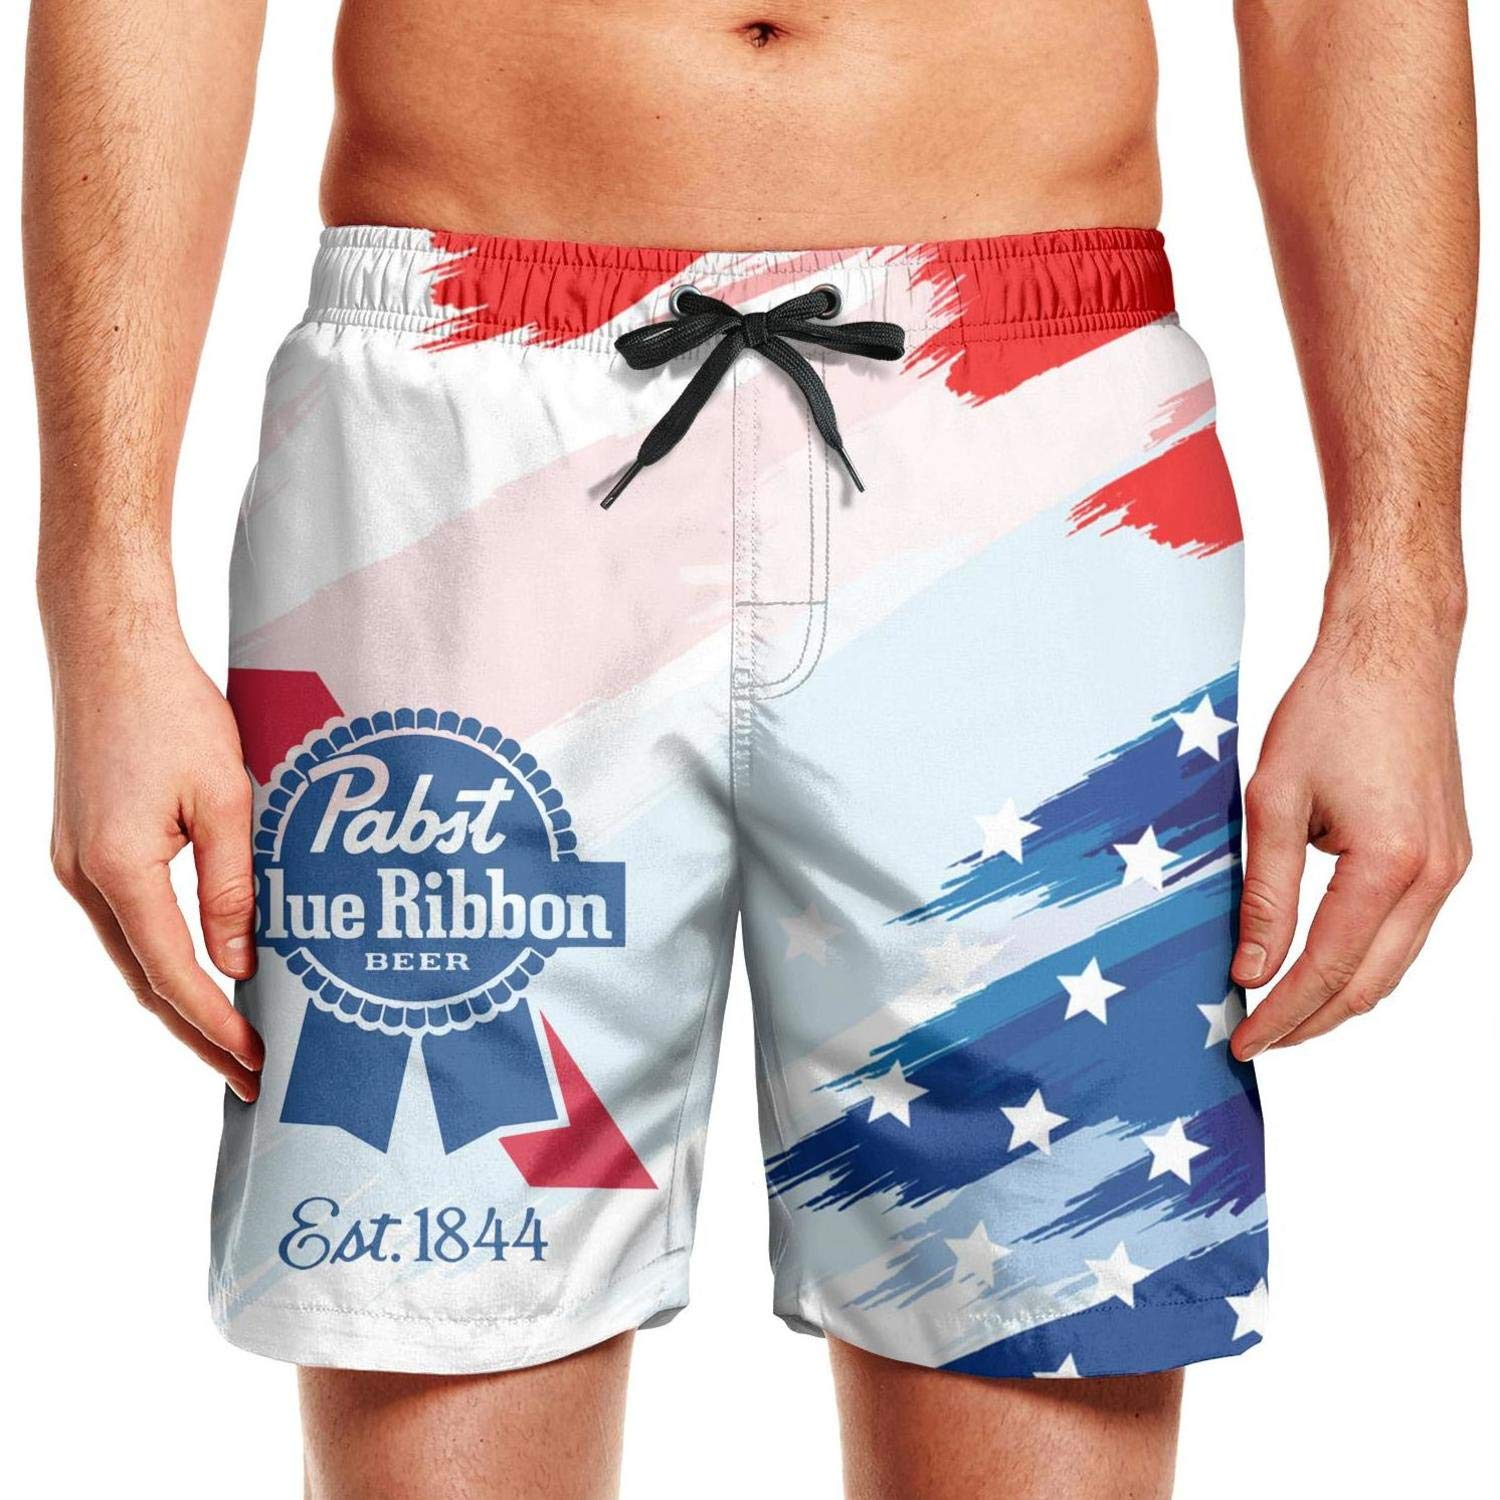 Pasbt Blue Ribbon Beer Patriotic American Usa Flag July 4th Shorts